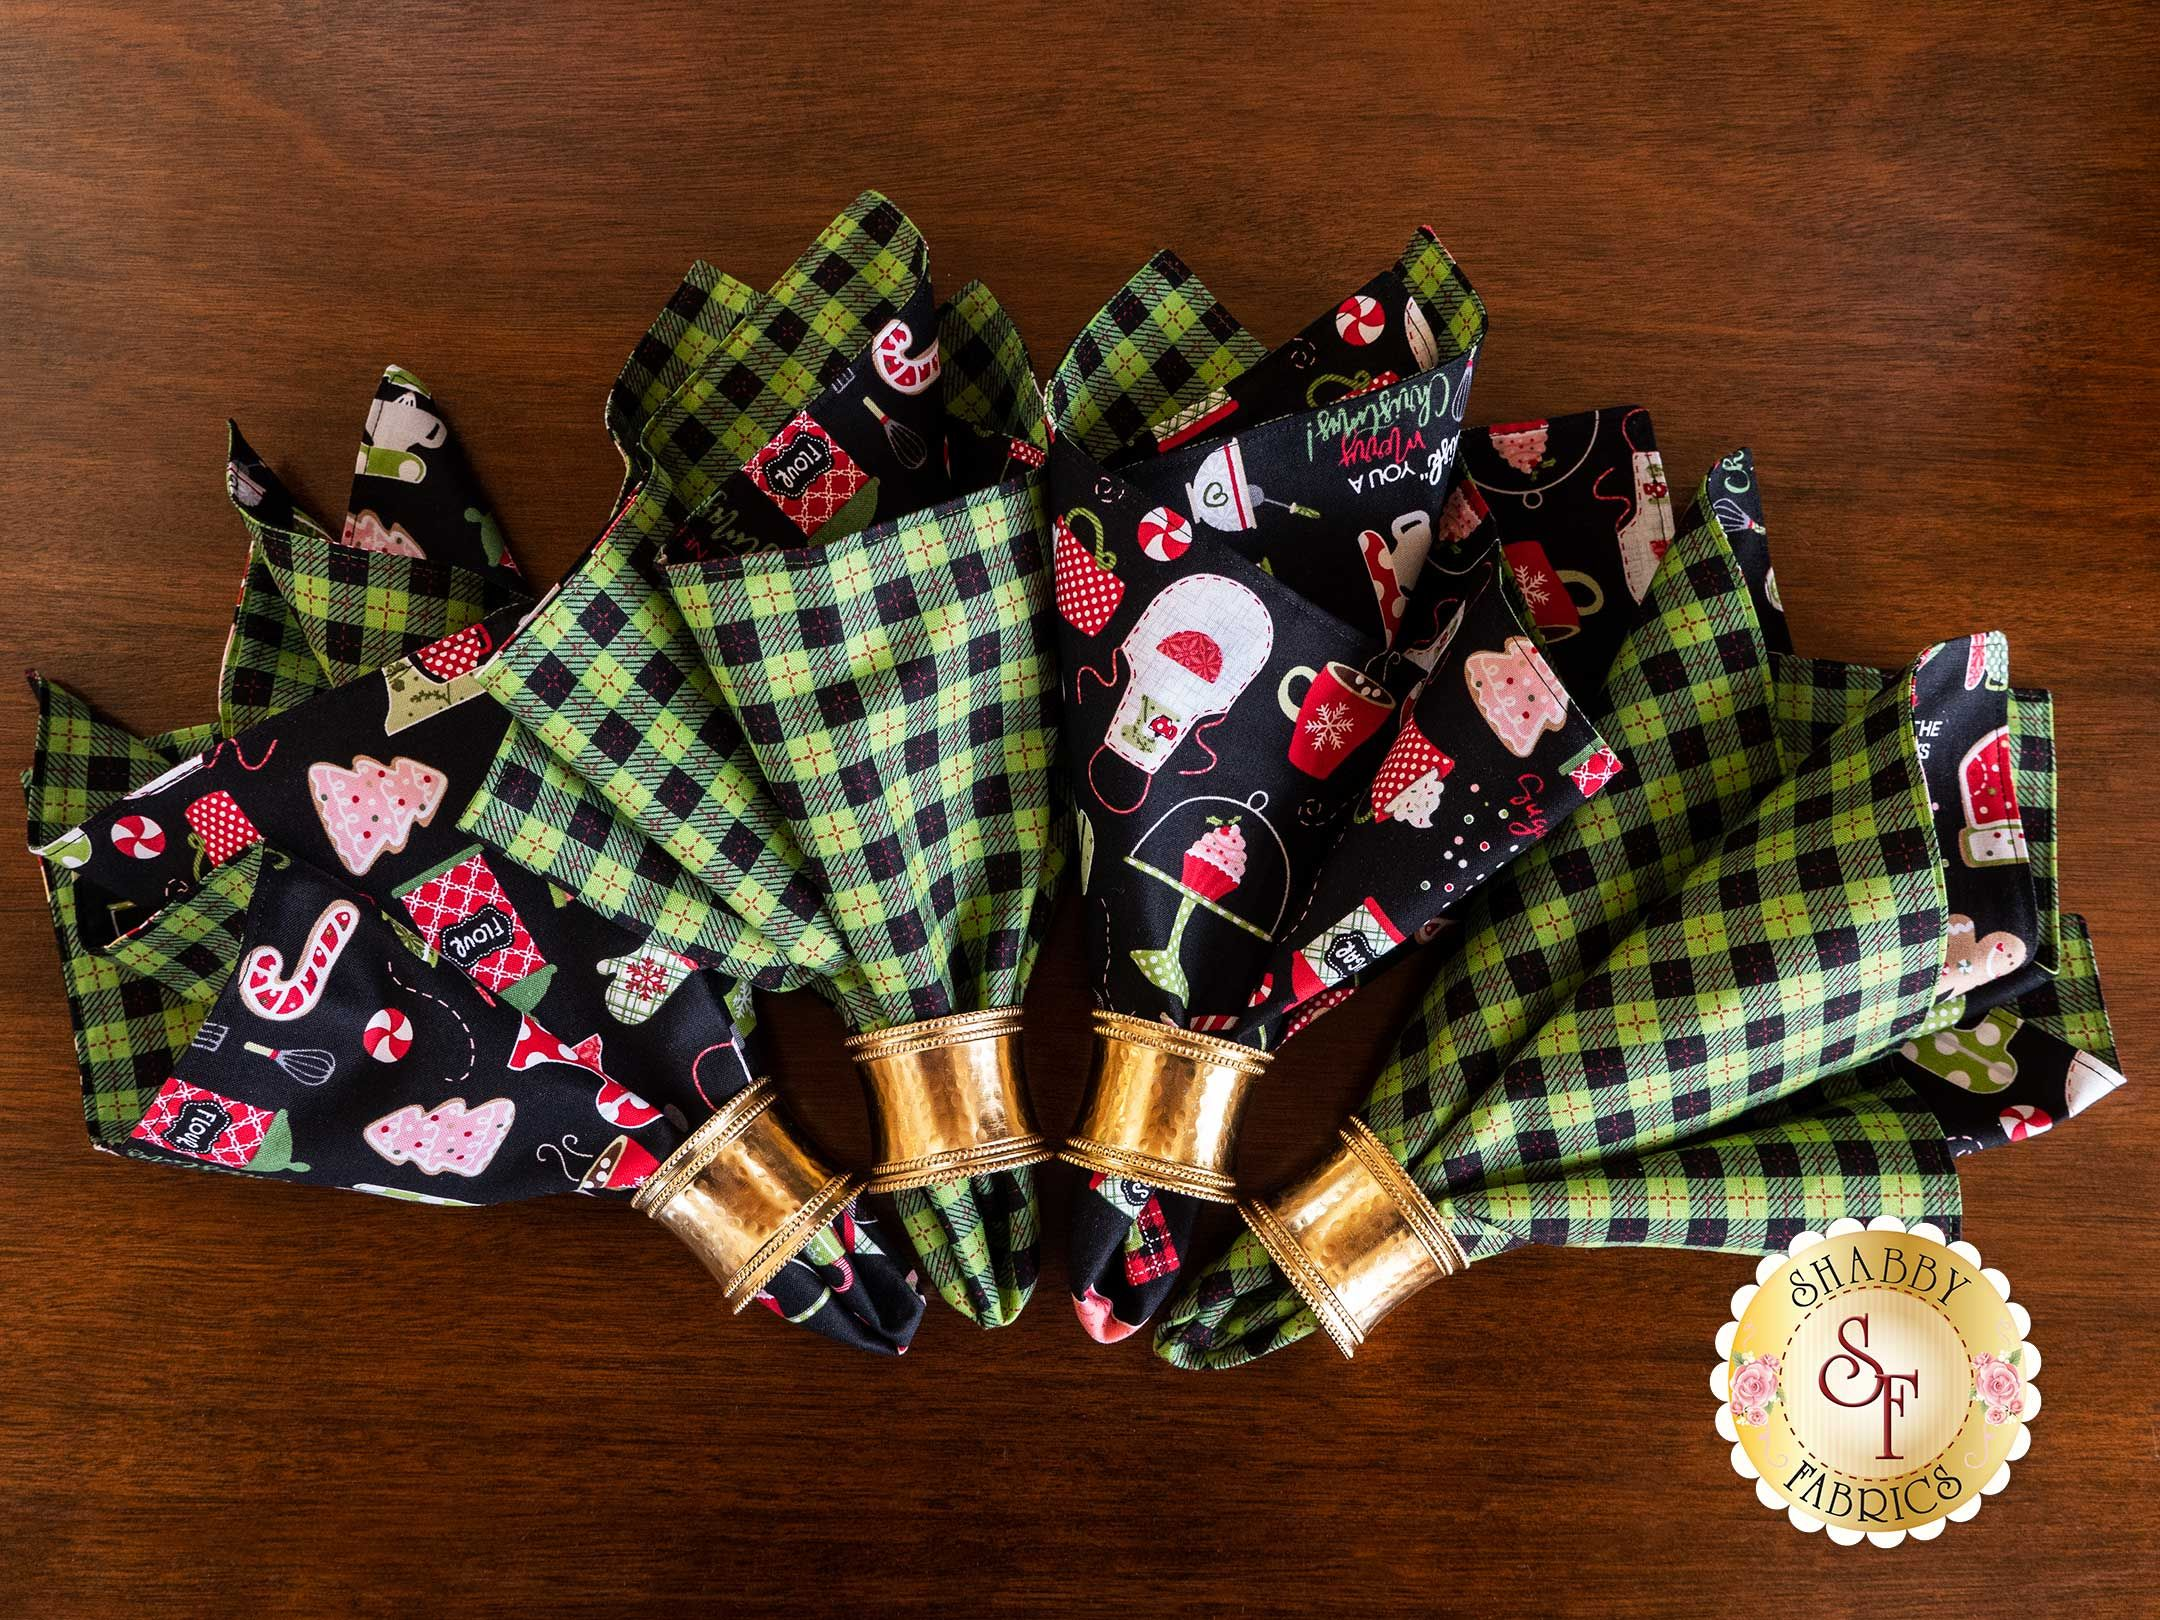 Cloth Napkins Kit - We Whisk You A Merry Christmas - Makes 4: VIDEO DEMONSTRATION PROJECT. Follow Along with Jen in our #clothnapkins